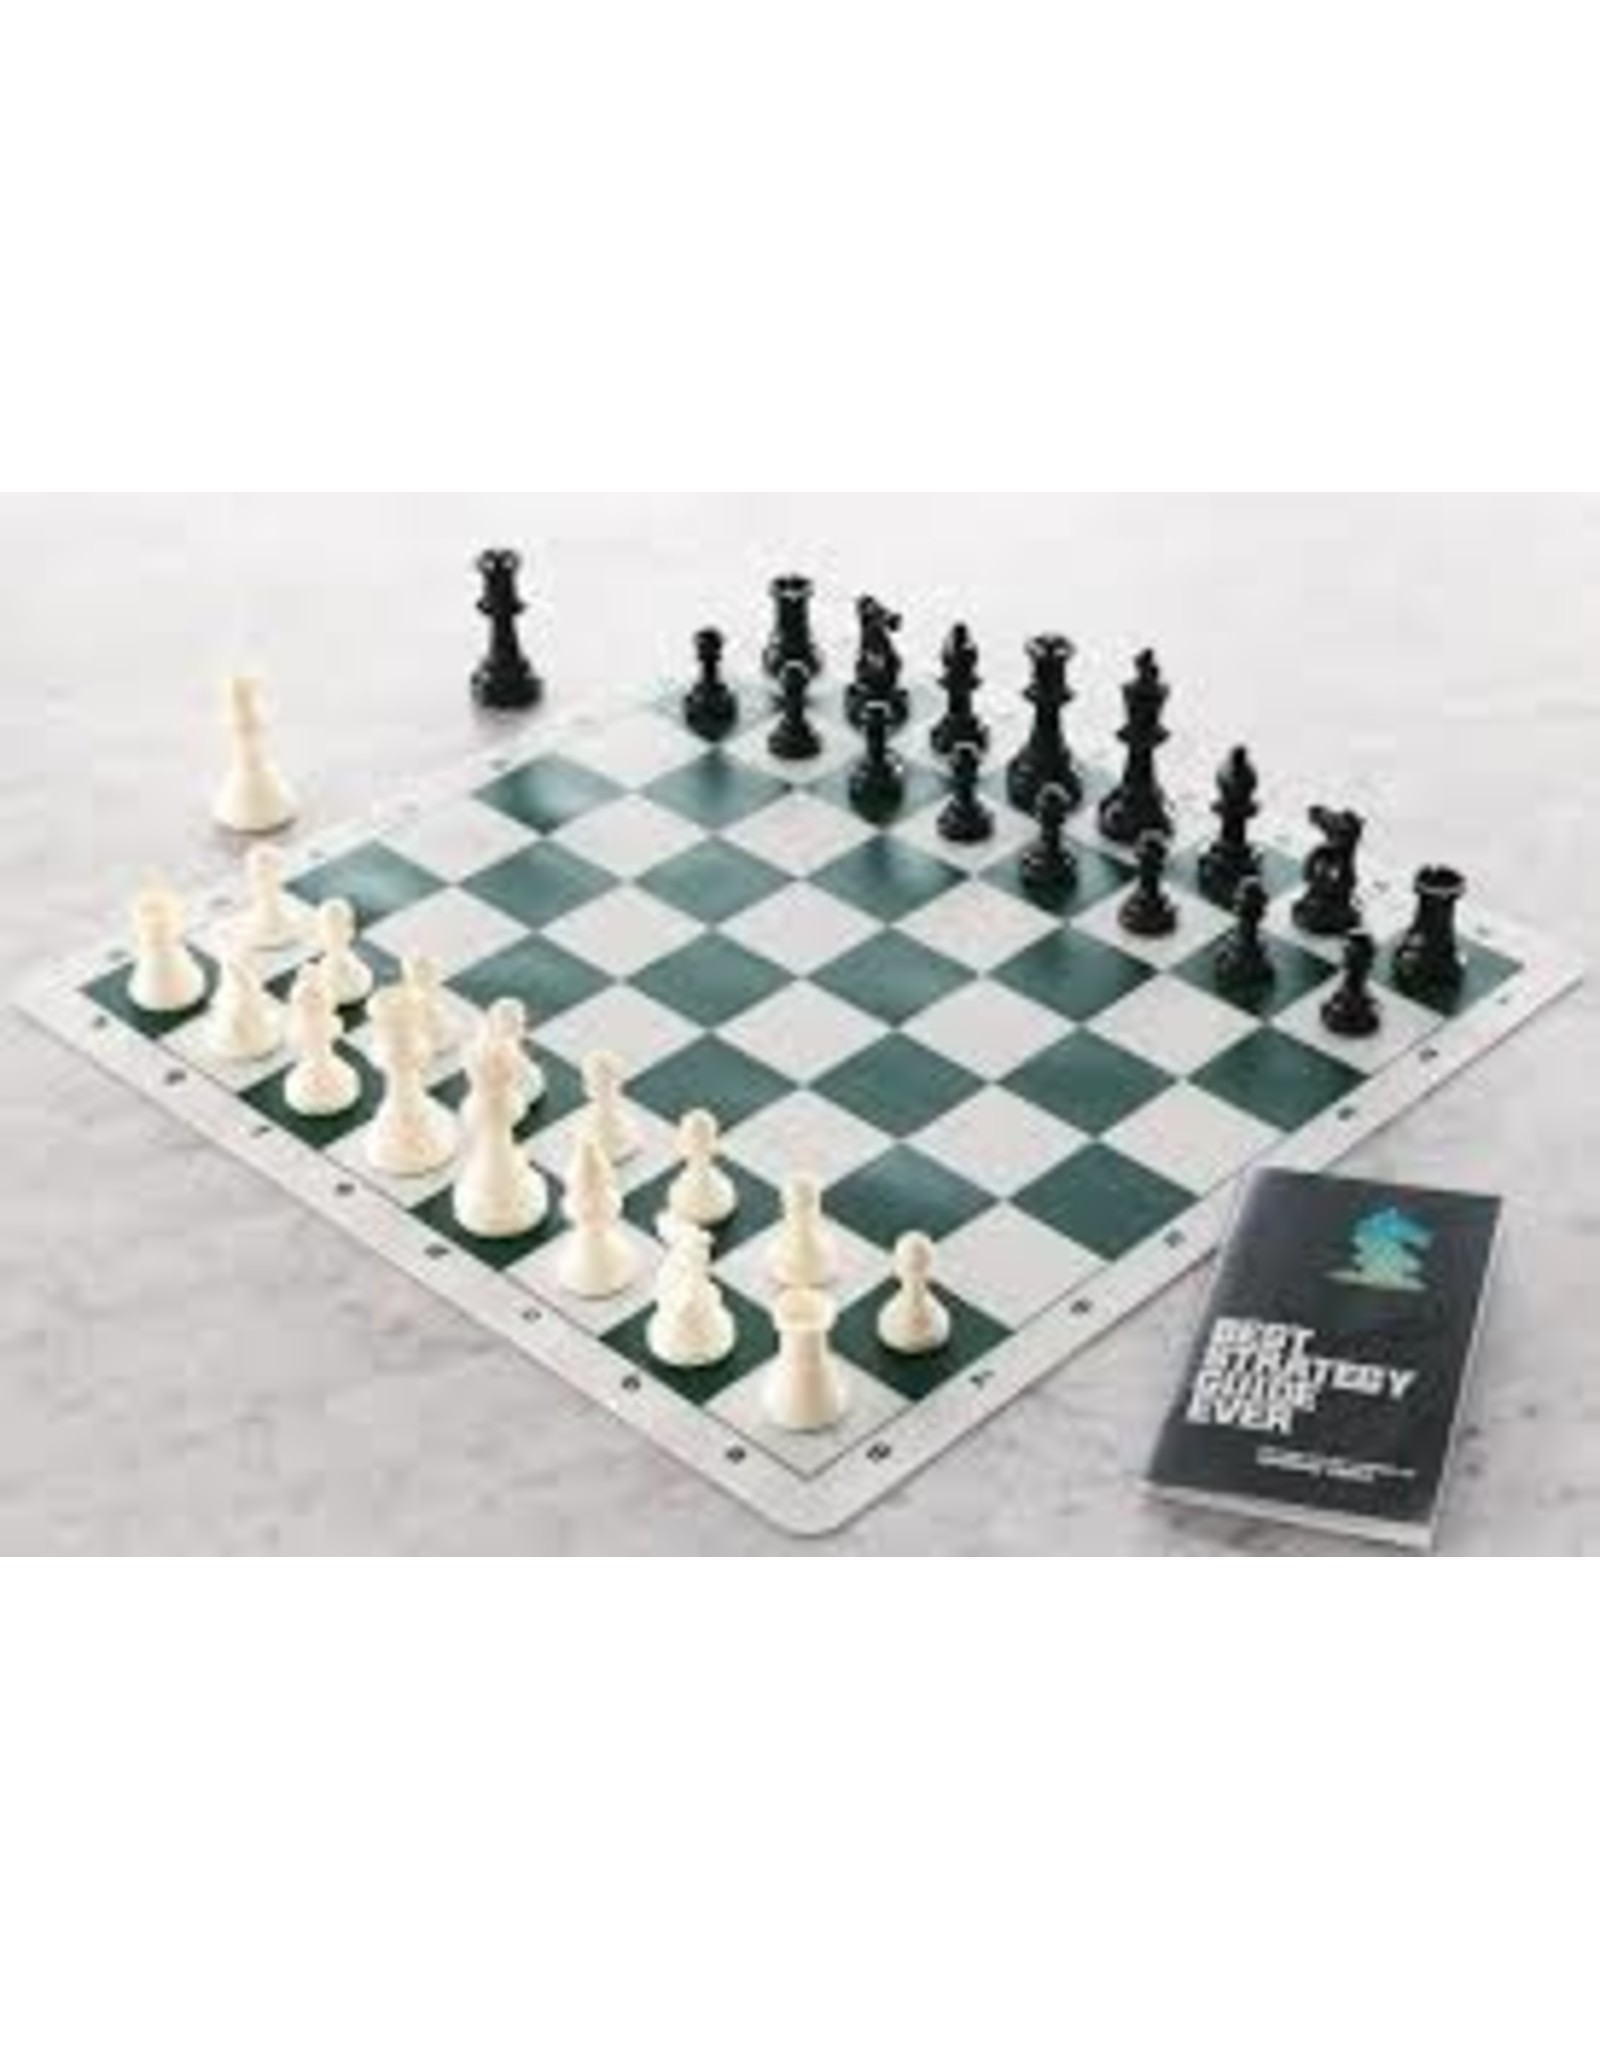 Best Chess Set Ever with Green Board